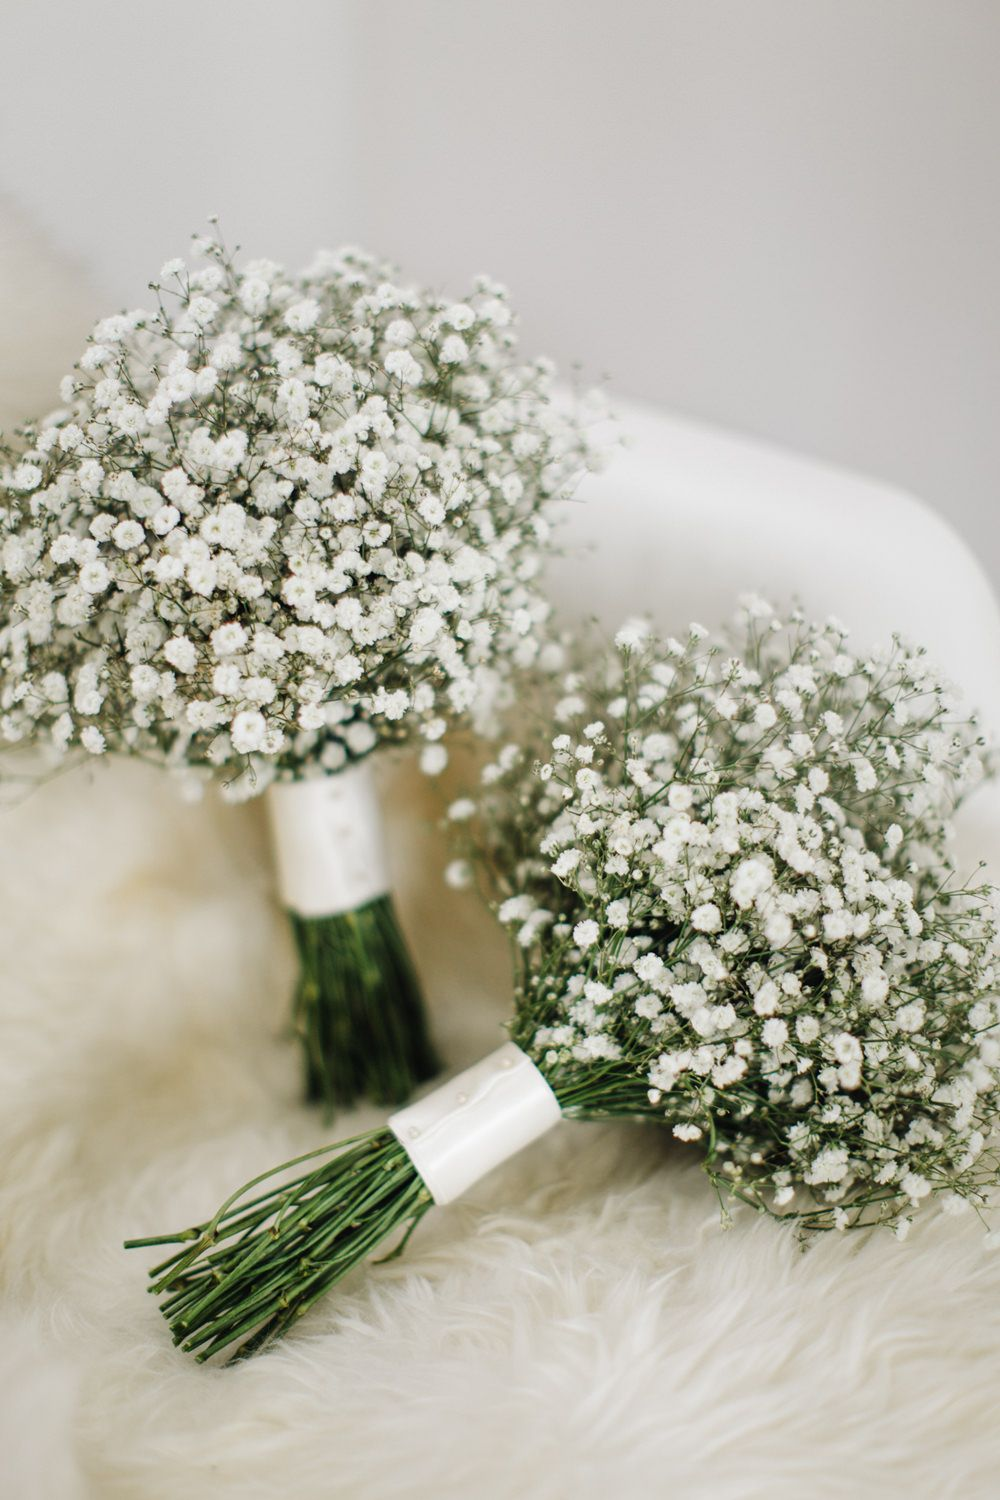 This is how a parisian plans a wedding pinterest gypsophila gypsophila posies for flower girls how to plan a wedding like a parisian mightylinksfo